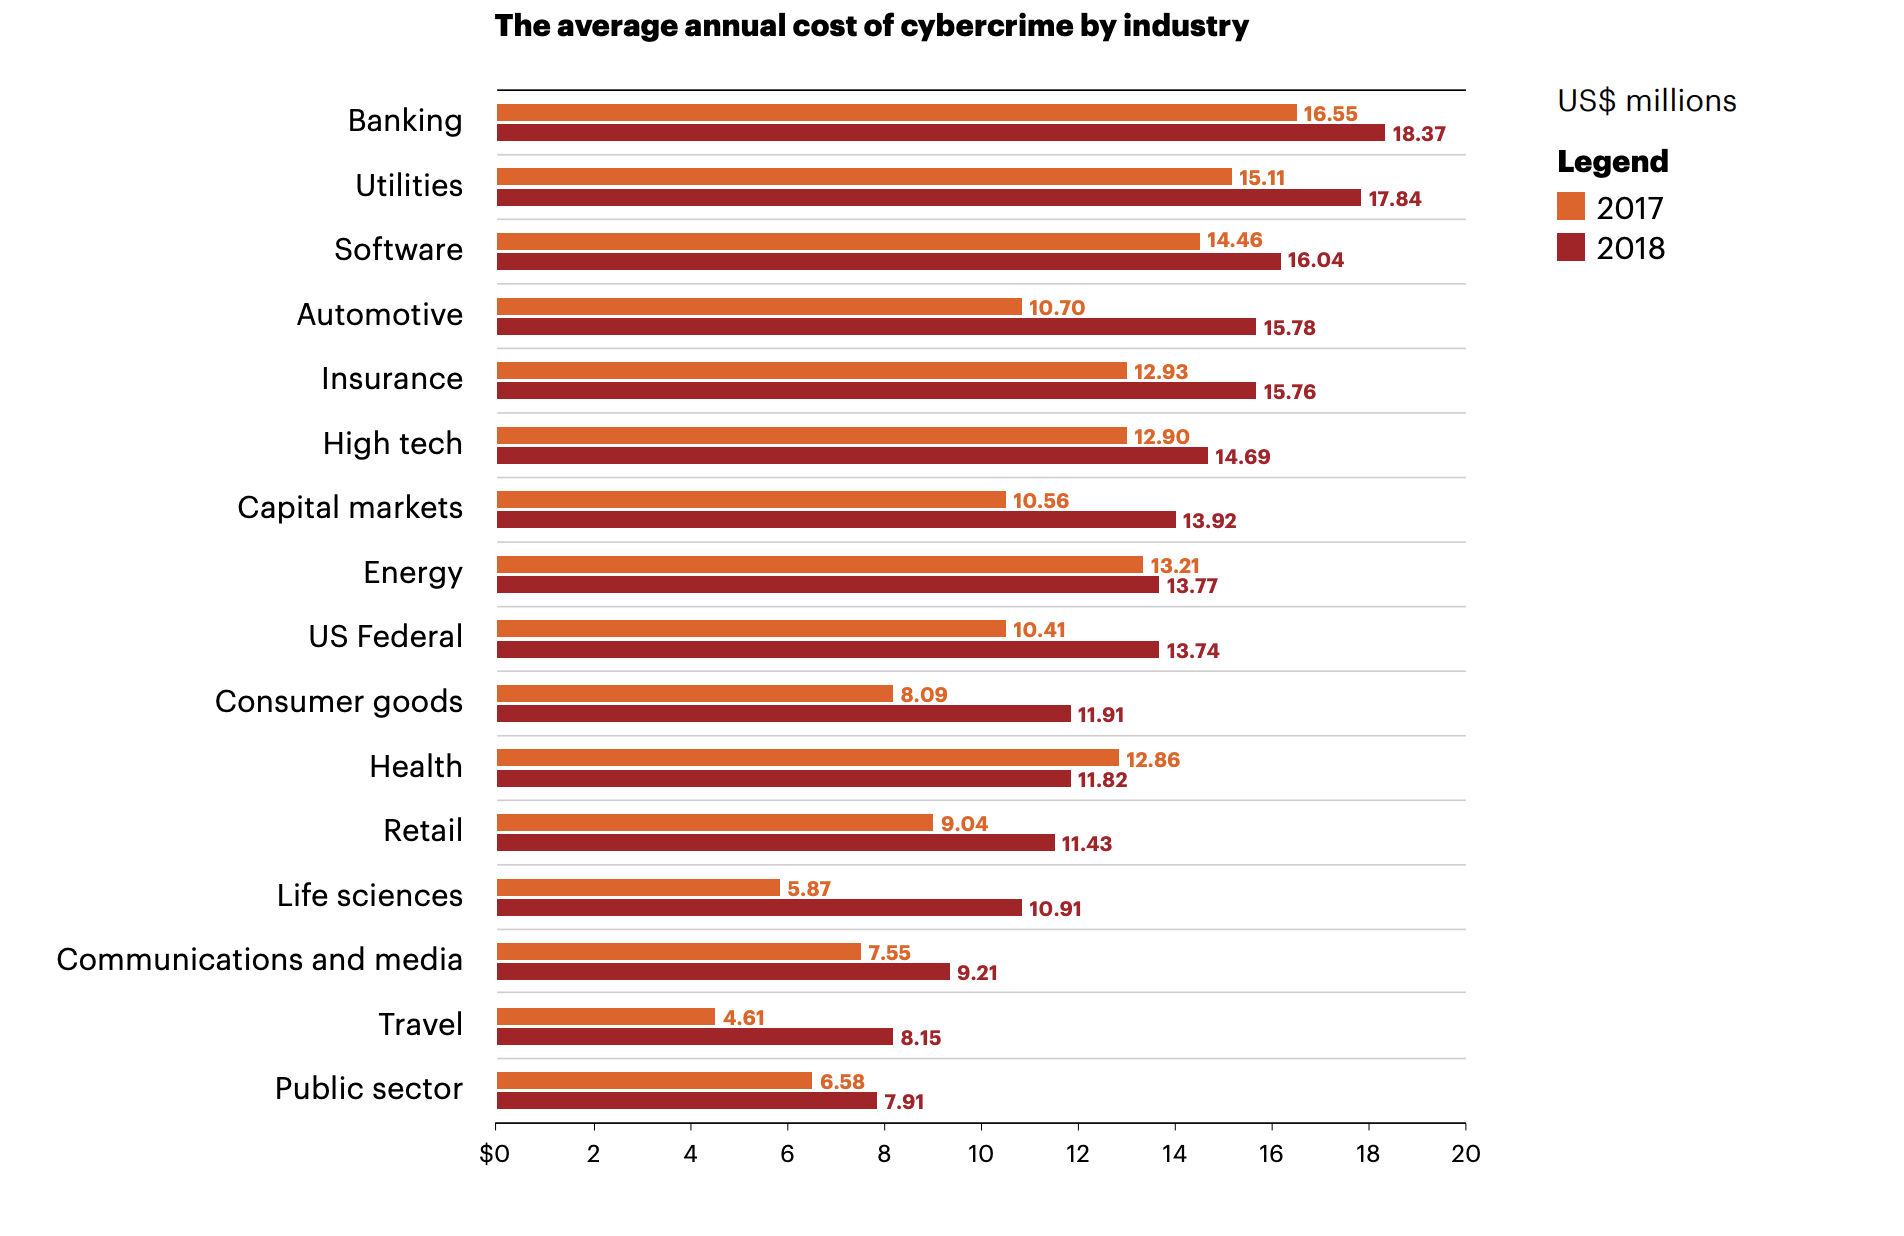 Bar chart shows the cost of cybercrime to various business sectors.